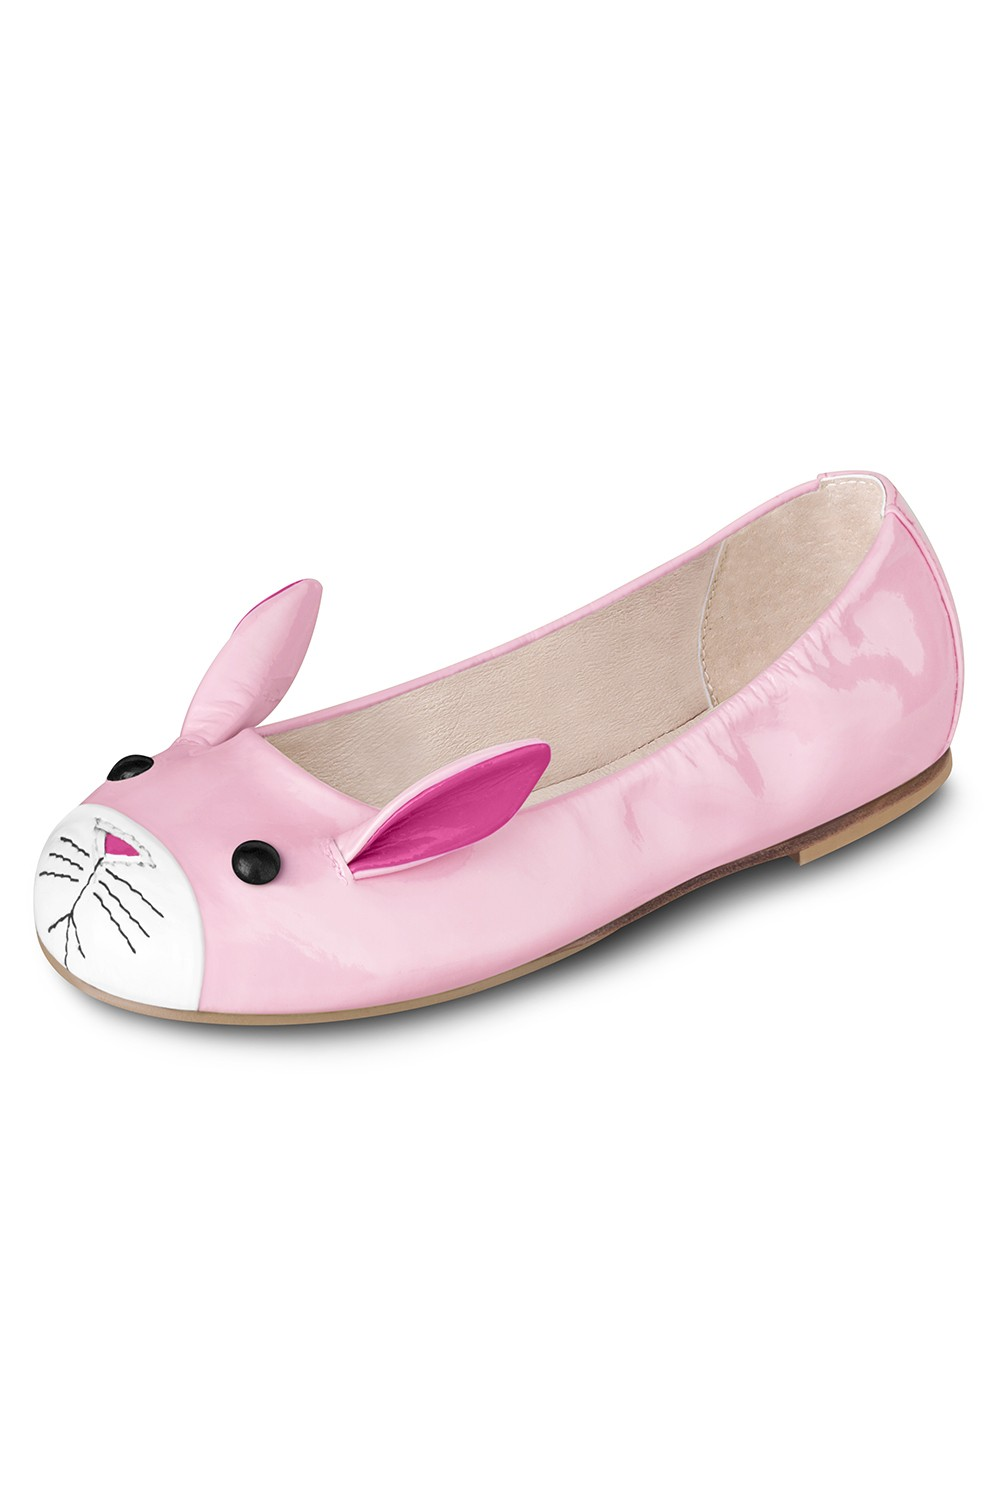 Lapin Girls Fashion Shoes